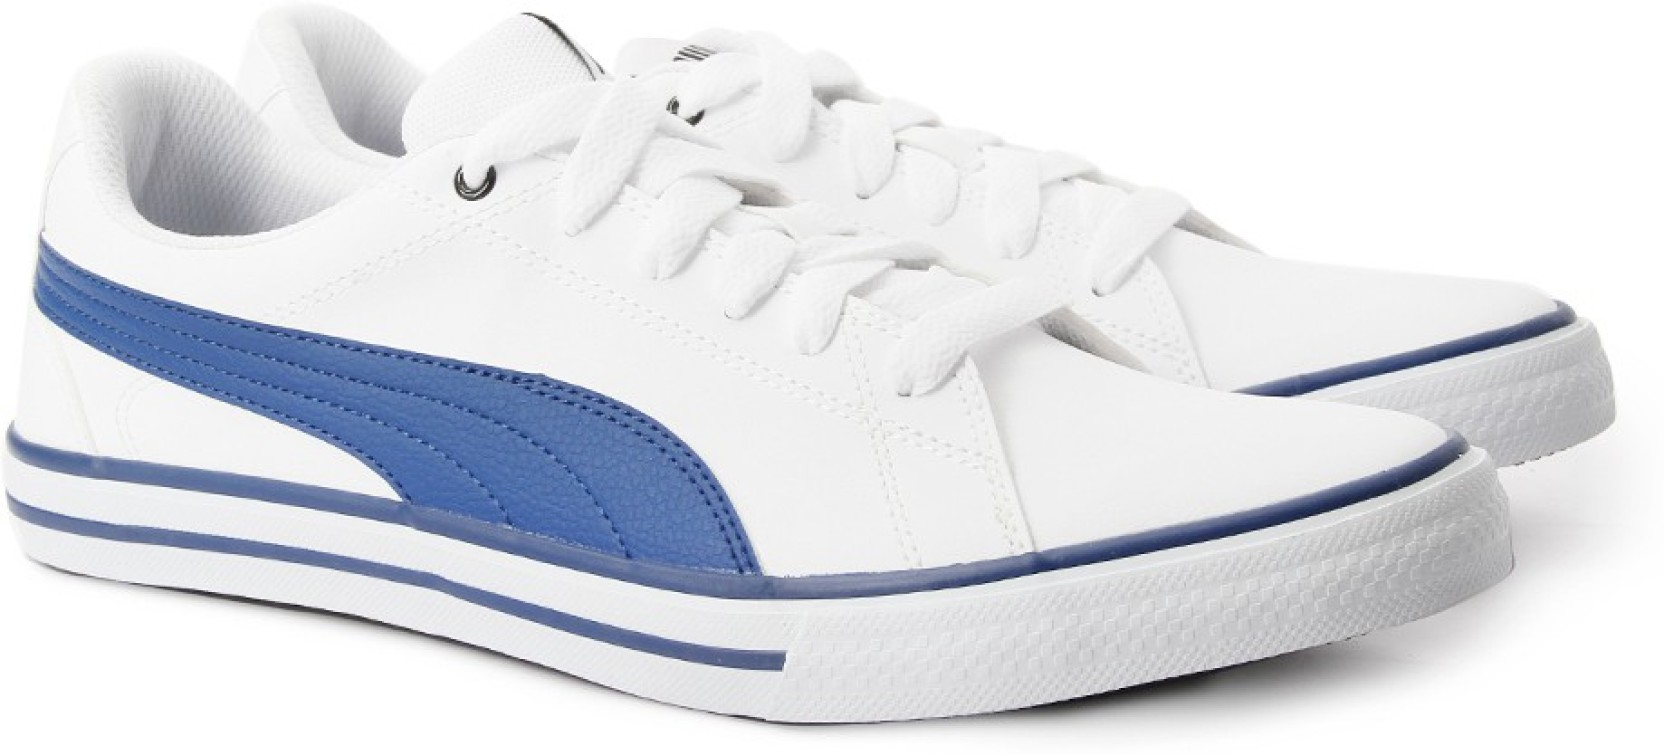 Puma Court Point Vulc v2 IDP Sneakers For Men